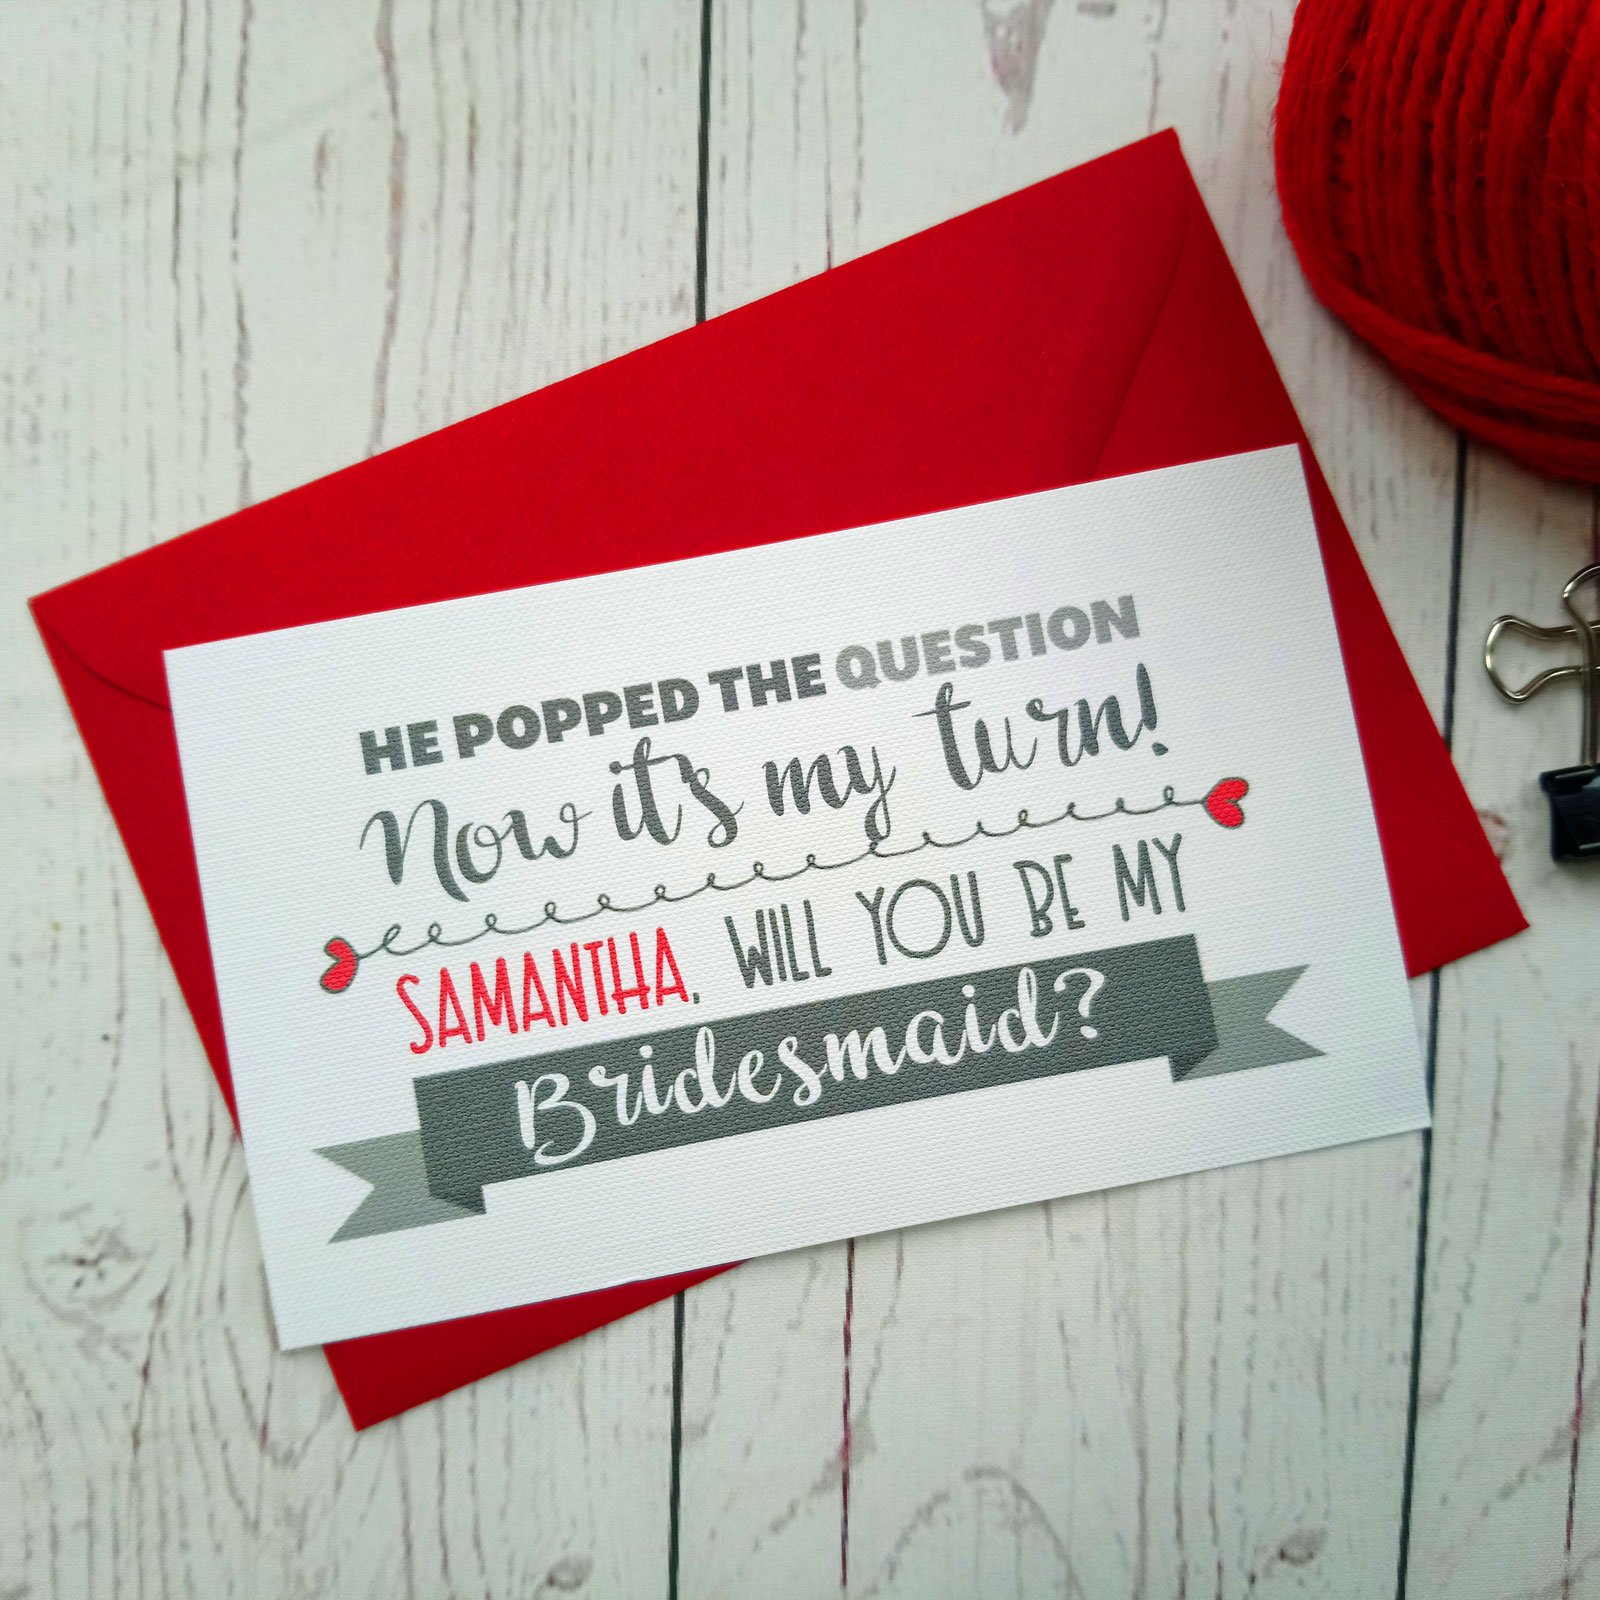 Lovers Bike Love heart Bridesmaid Request with grey banner. He popped the question